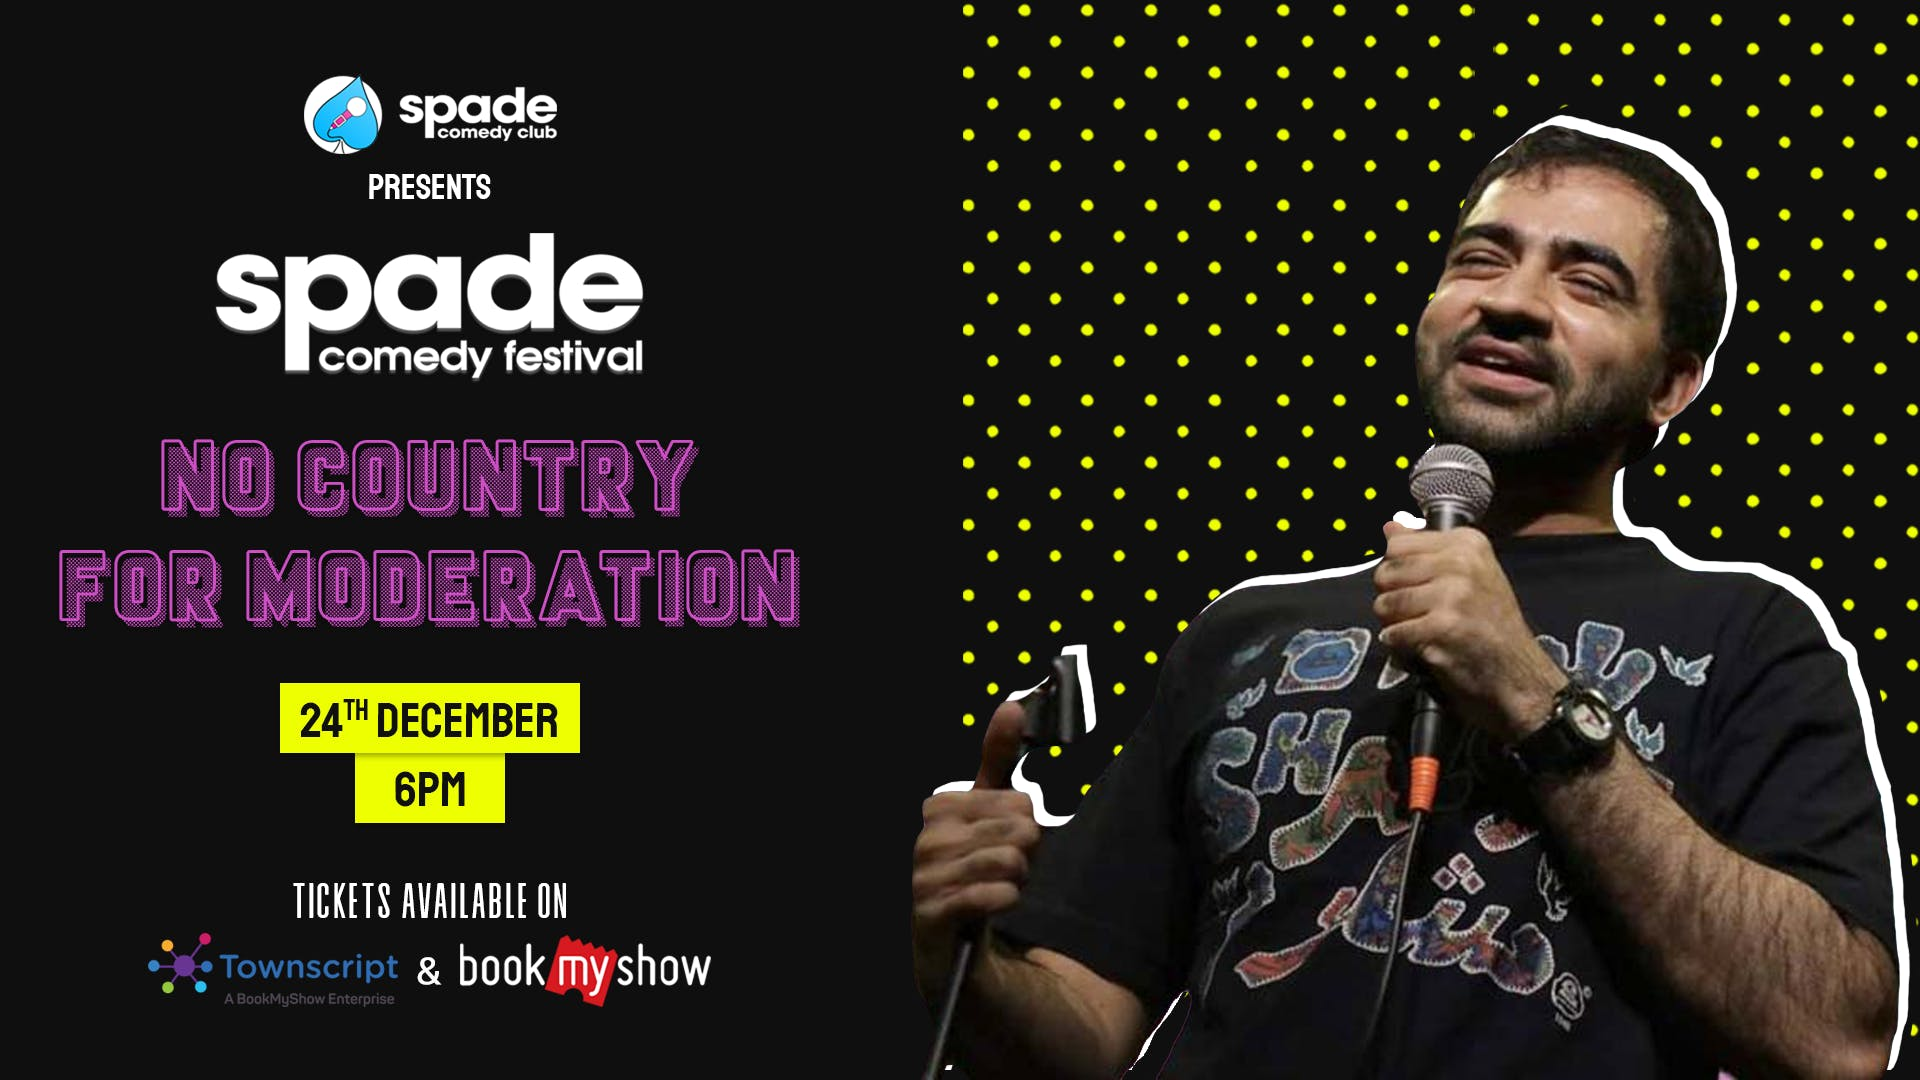 No Country for Moderation by Punit Pania at Spade Comedy Festival